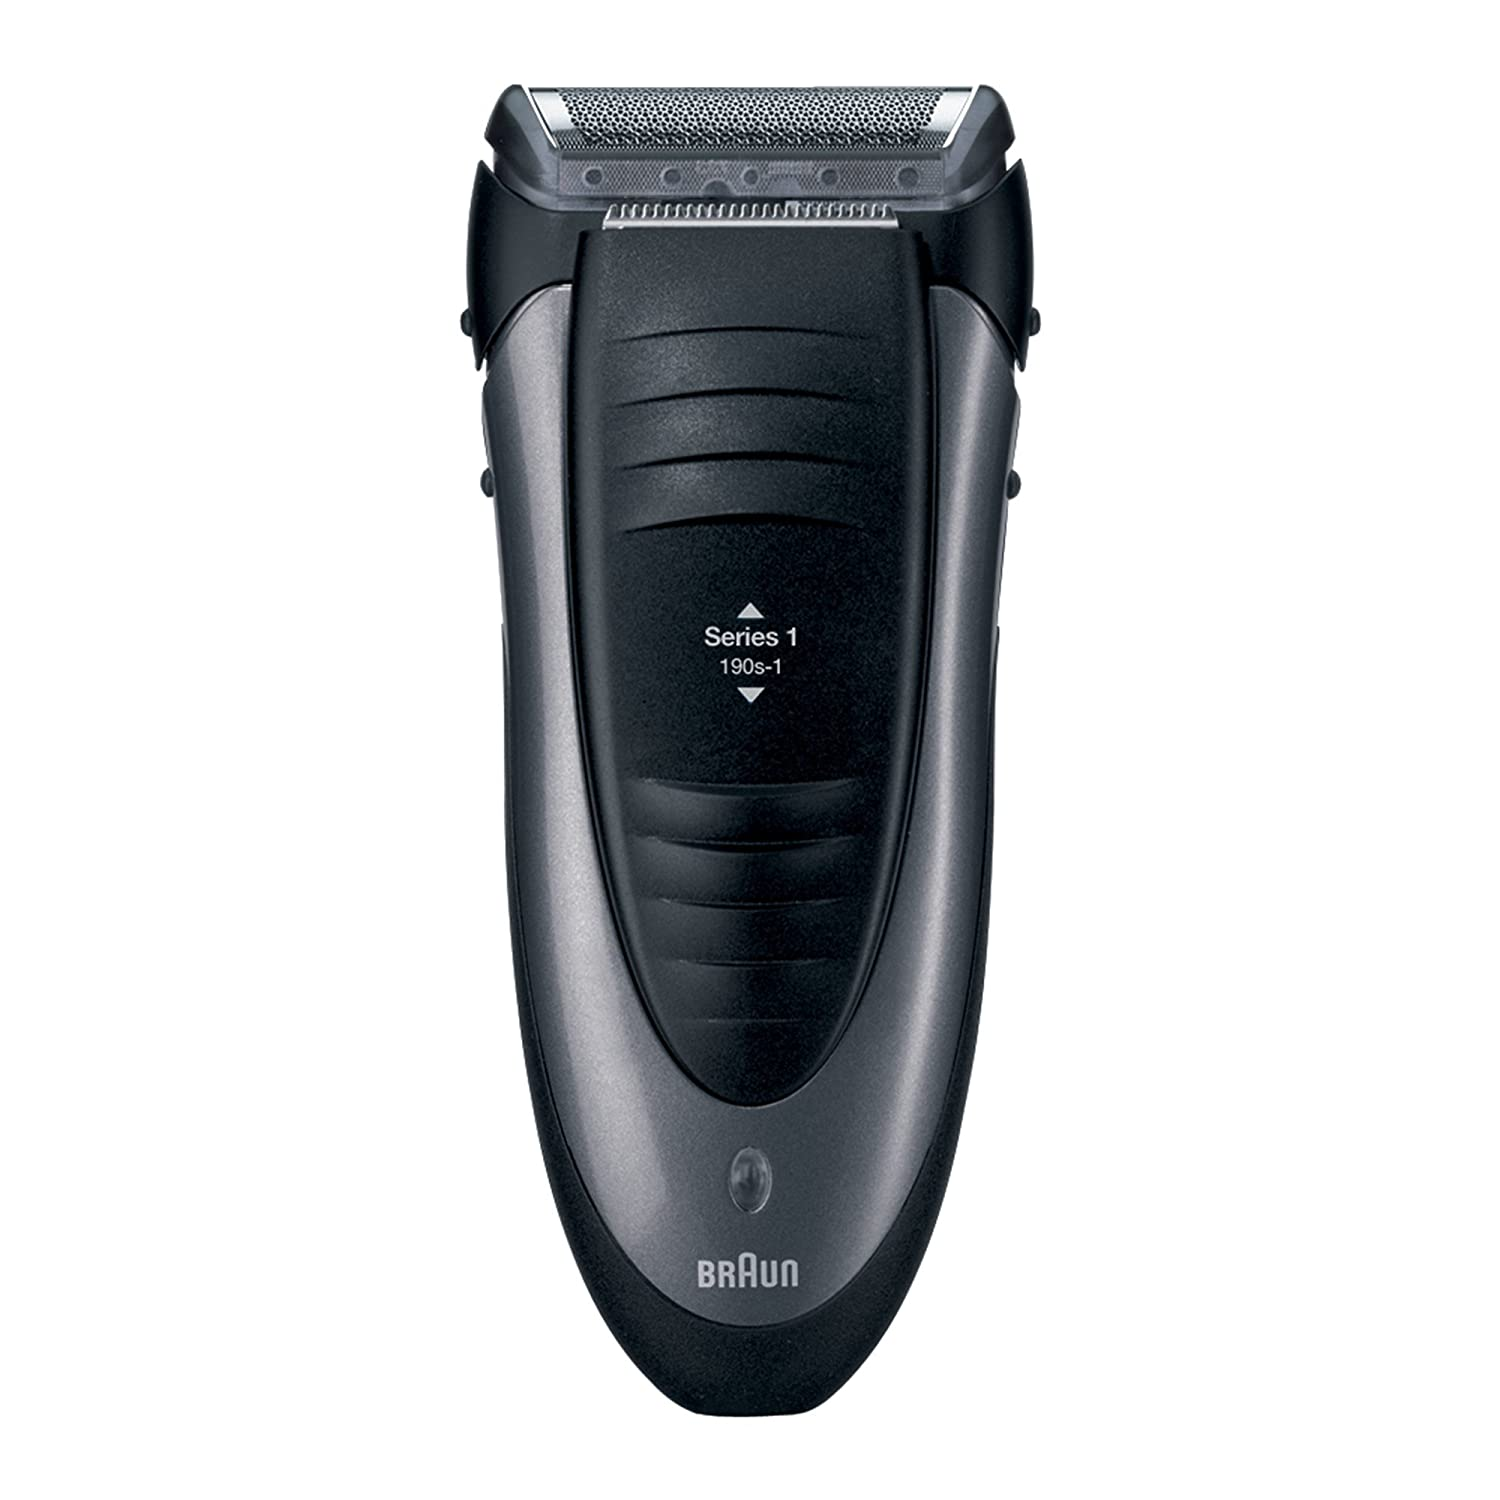 Braun Series 1 electric shaver 190s-1 Series 1 190S-1